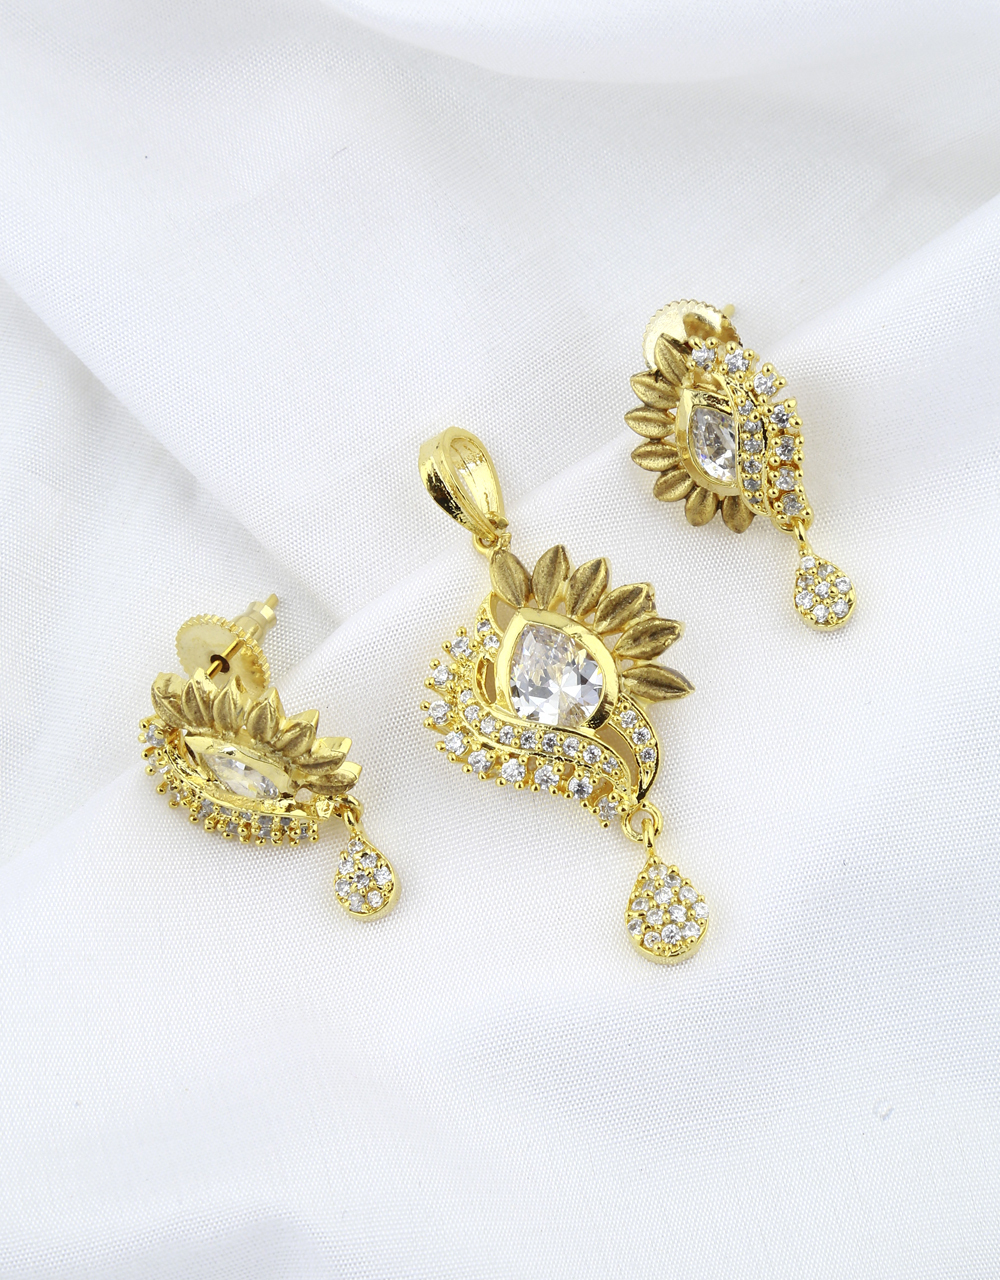 Antique Golden Finish Styled With Diamond Trendy Pendant Set For Women